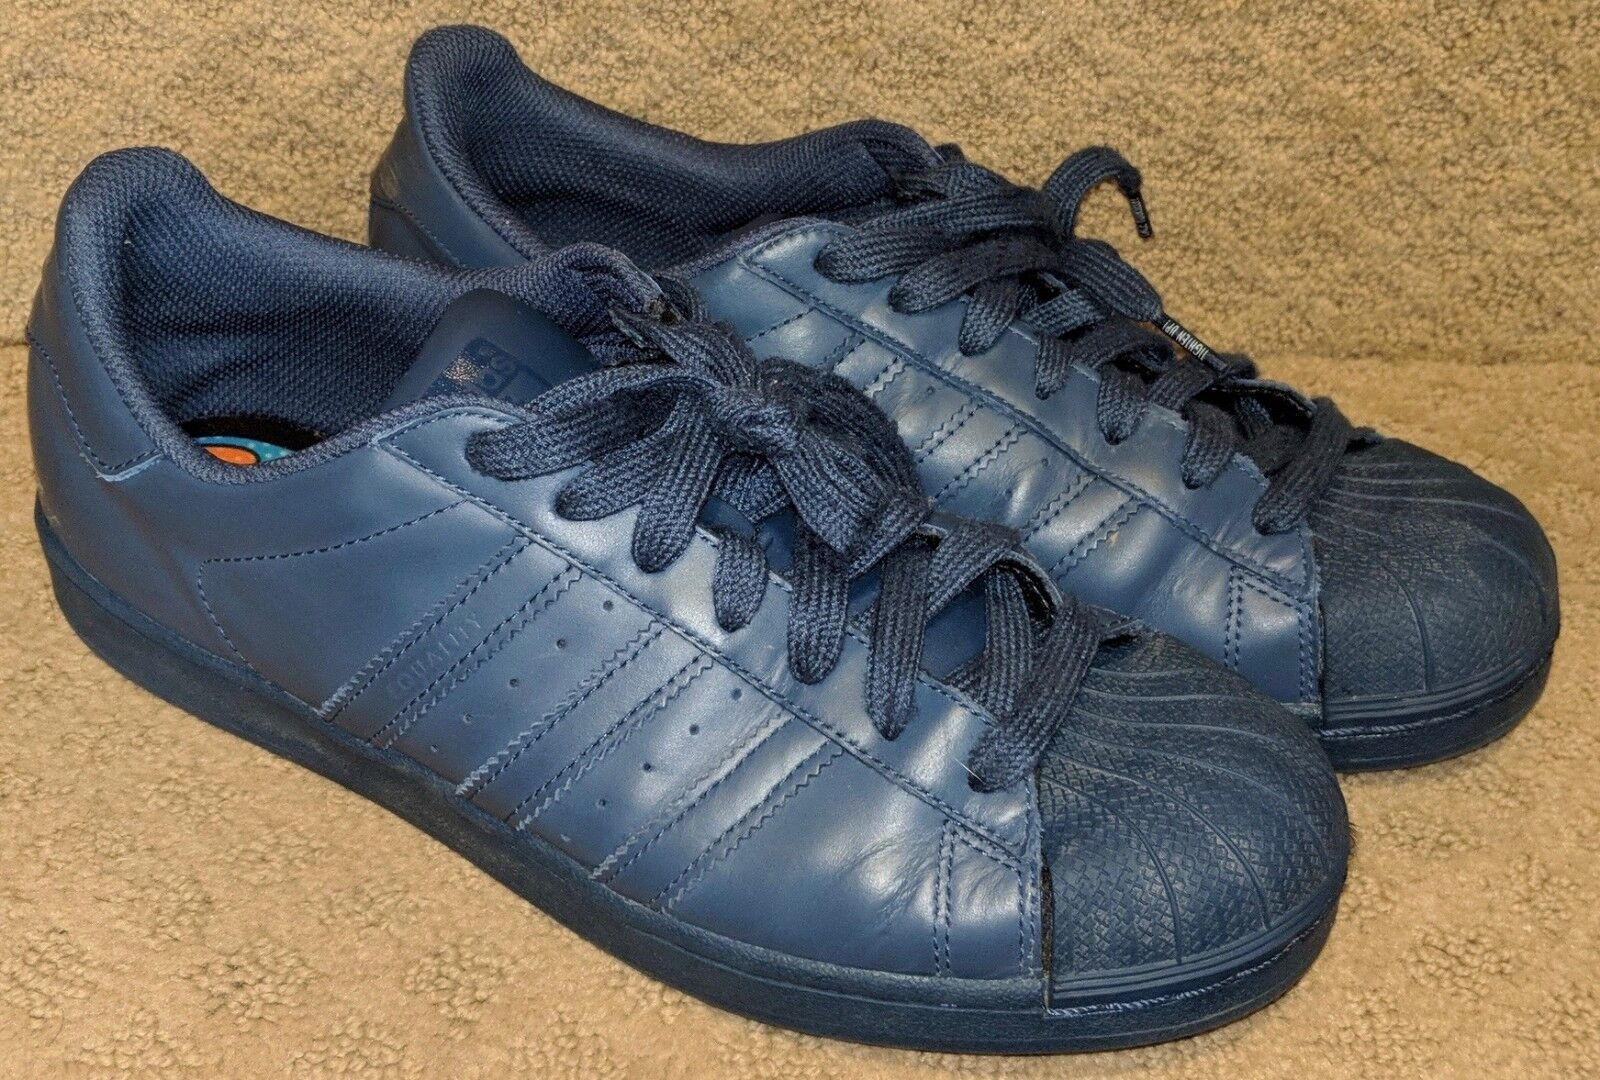 Adidas Pharrell Williams bluee Superstars Supercolor Pack Sneakers Size 9 S41811